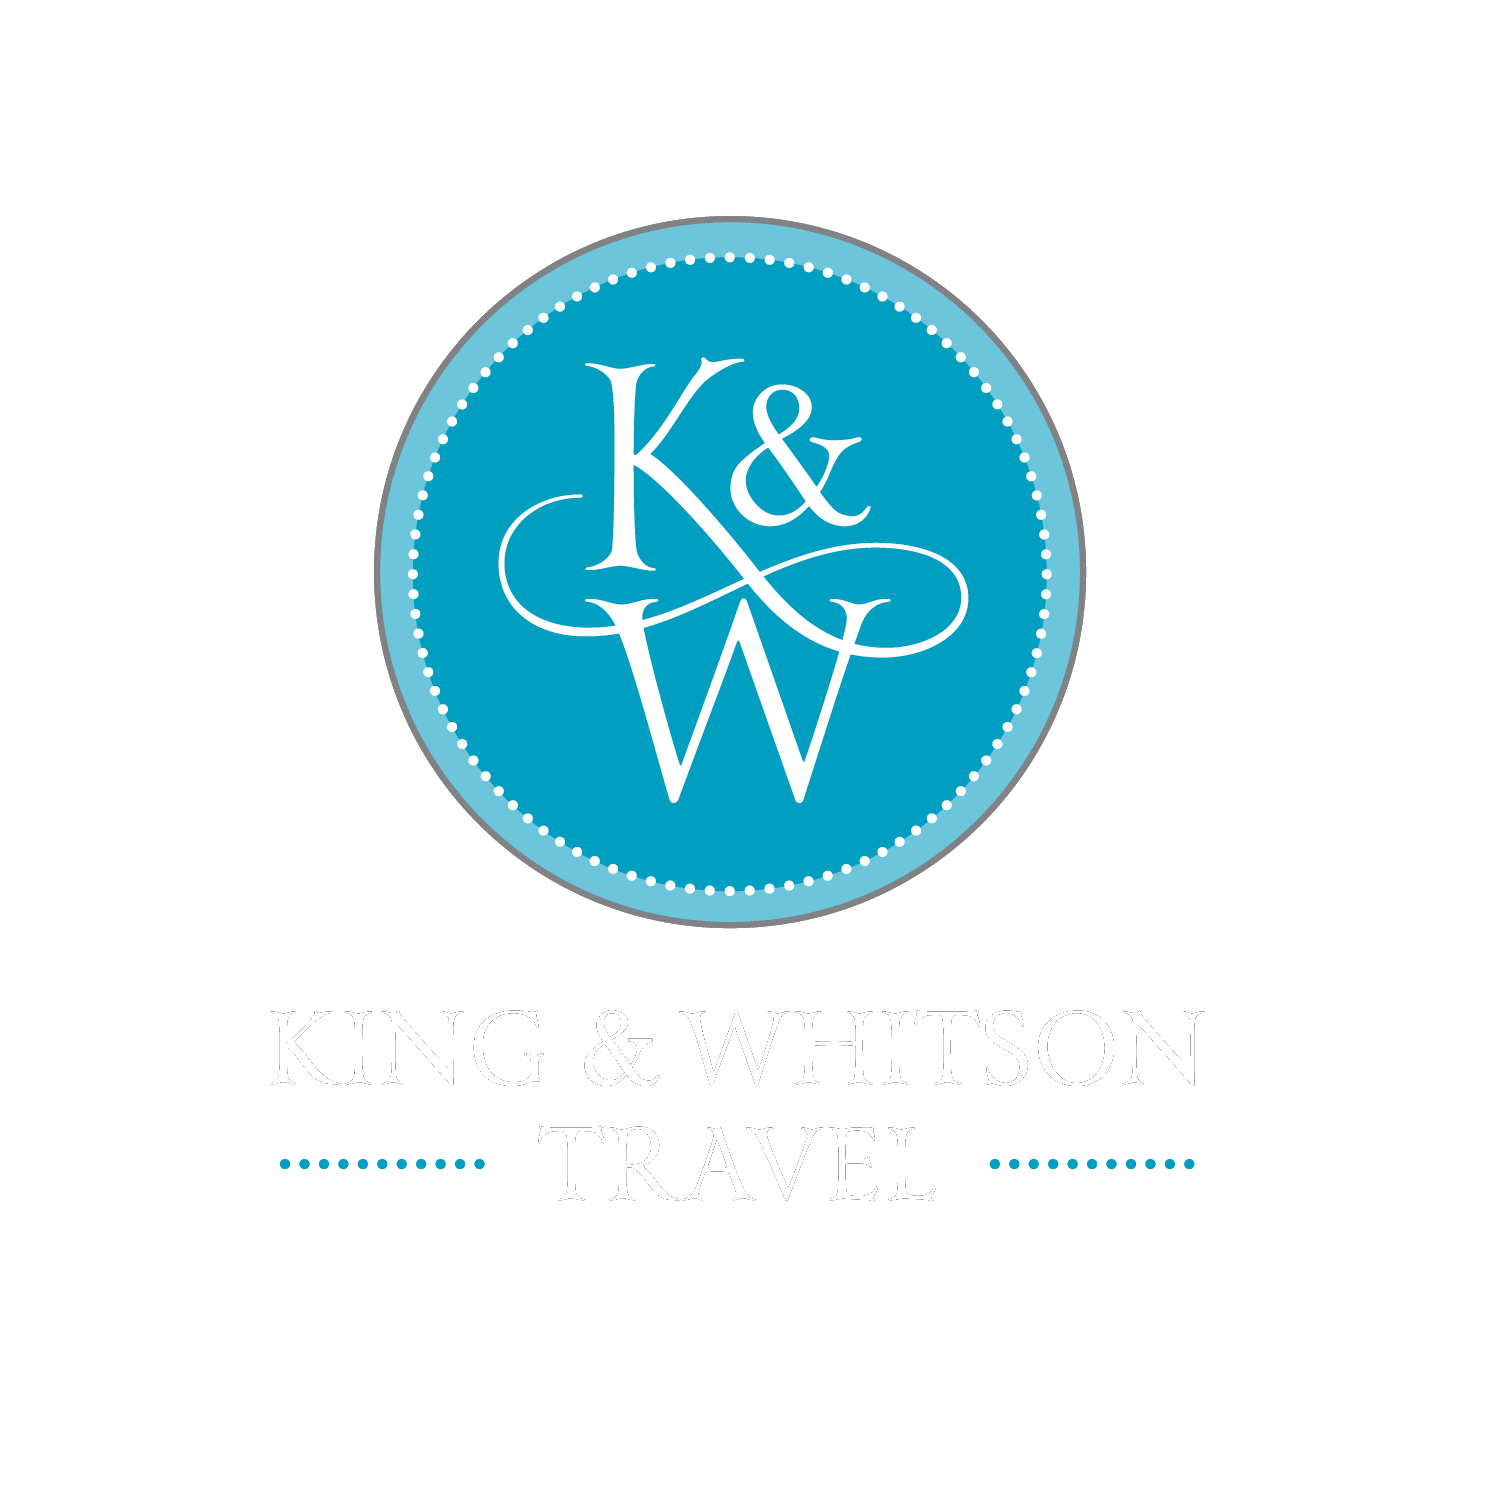 King & Whitson Travel